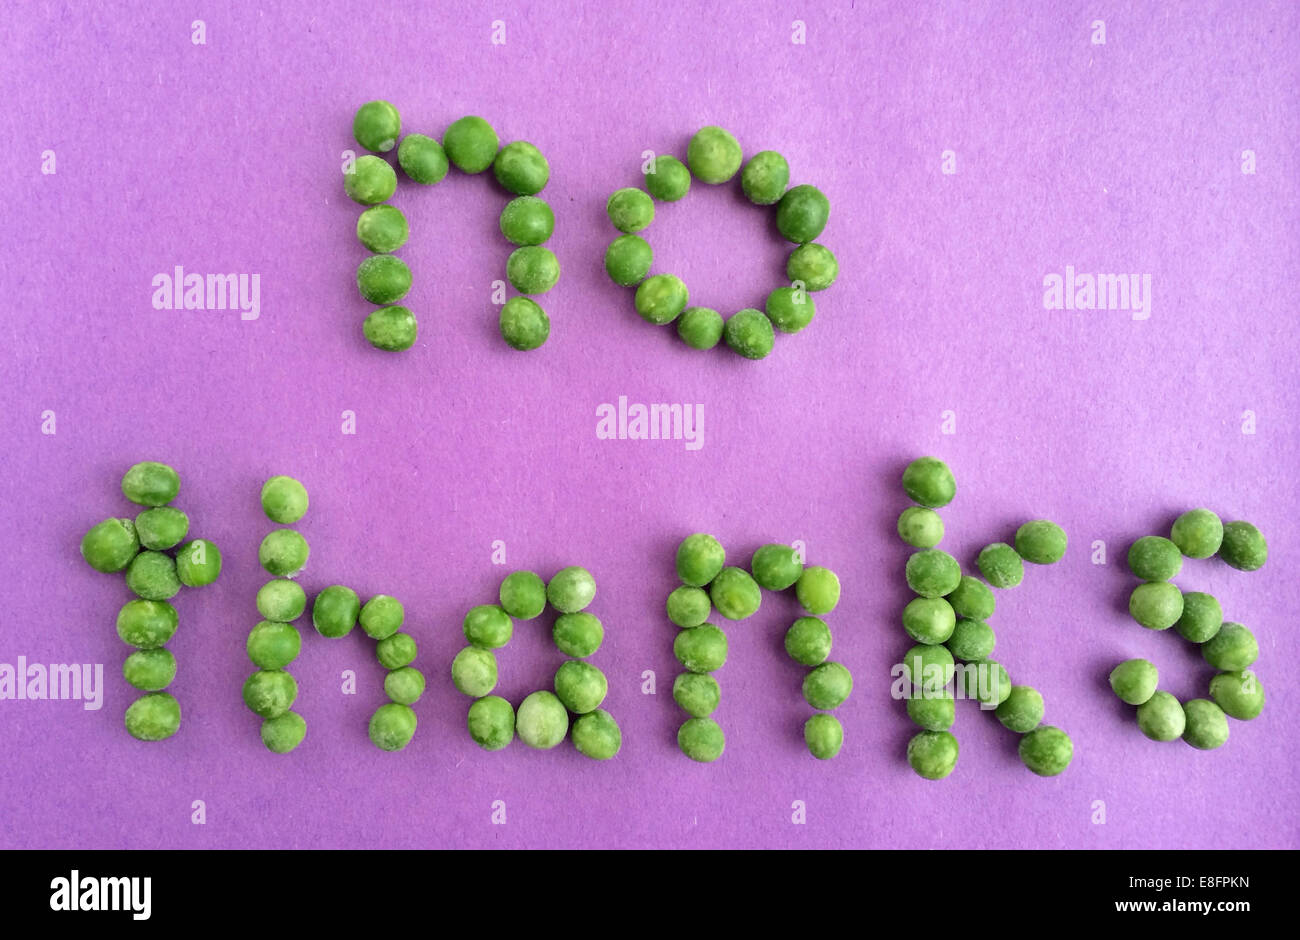 No thanks message written with peas - Stock Image